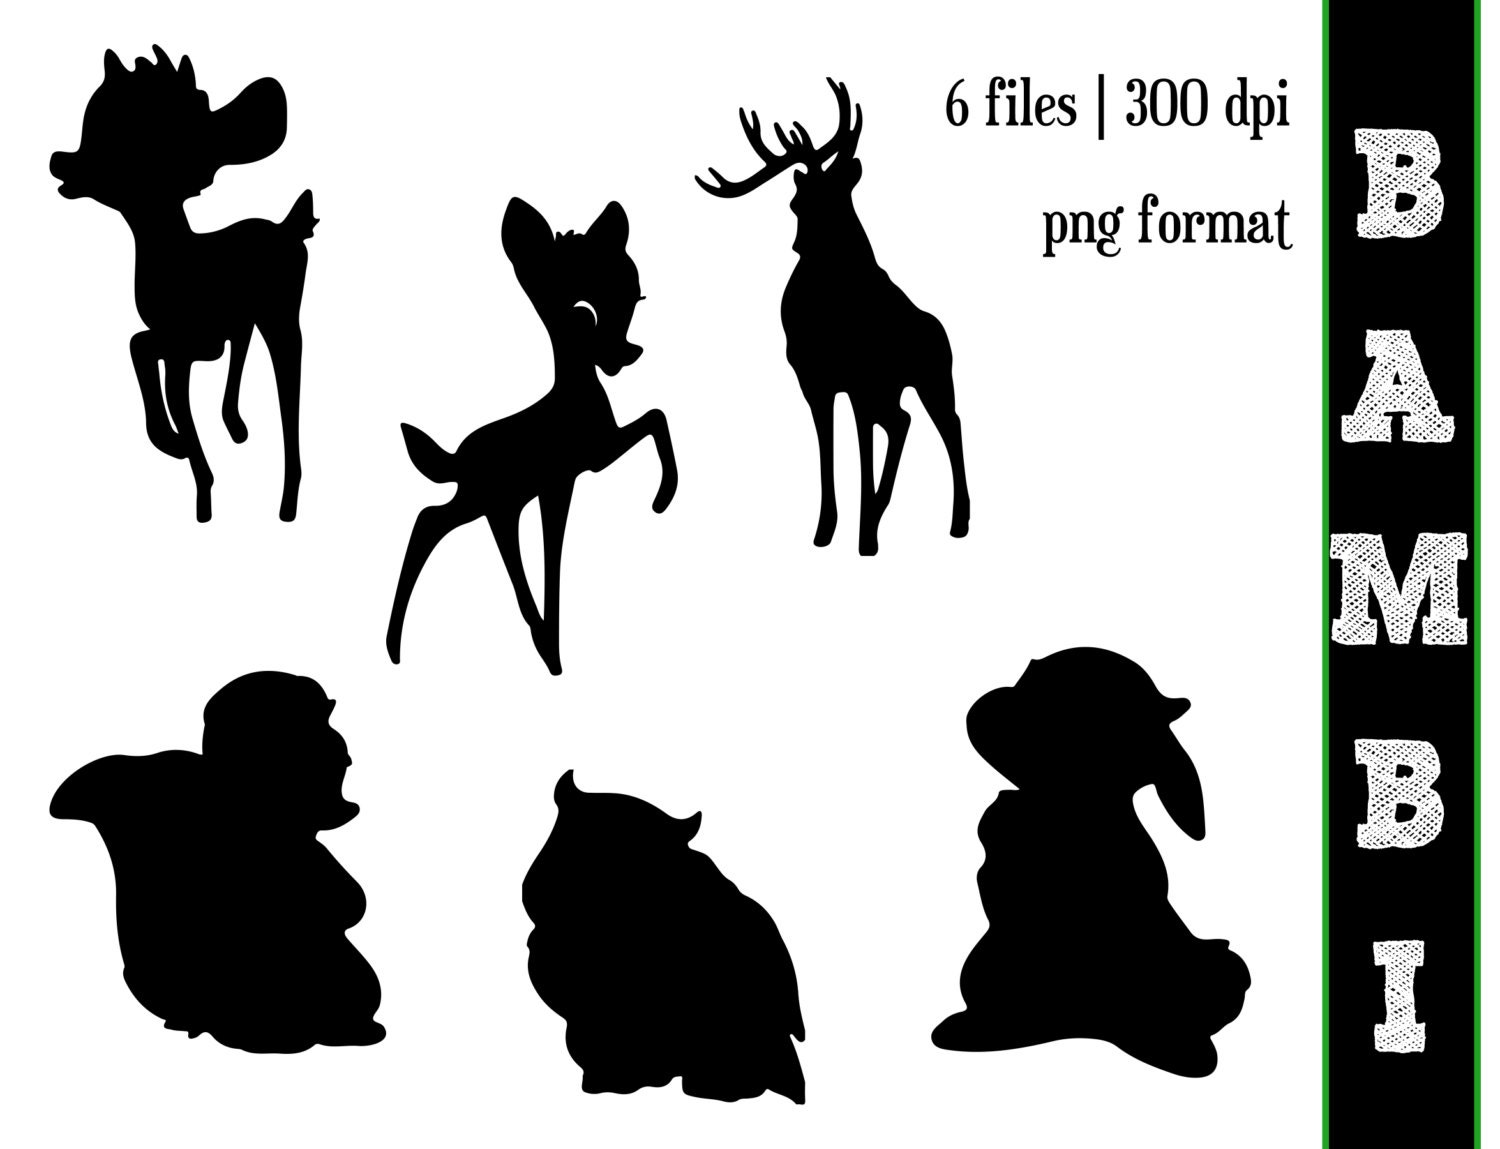 This is an image of Slobbery Disney Character Silhouettes